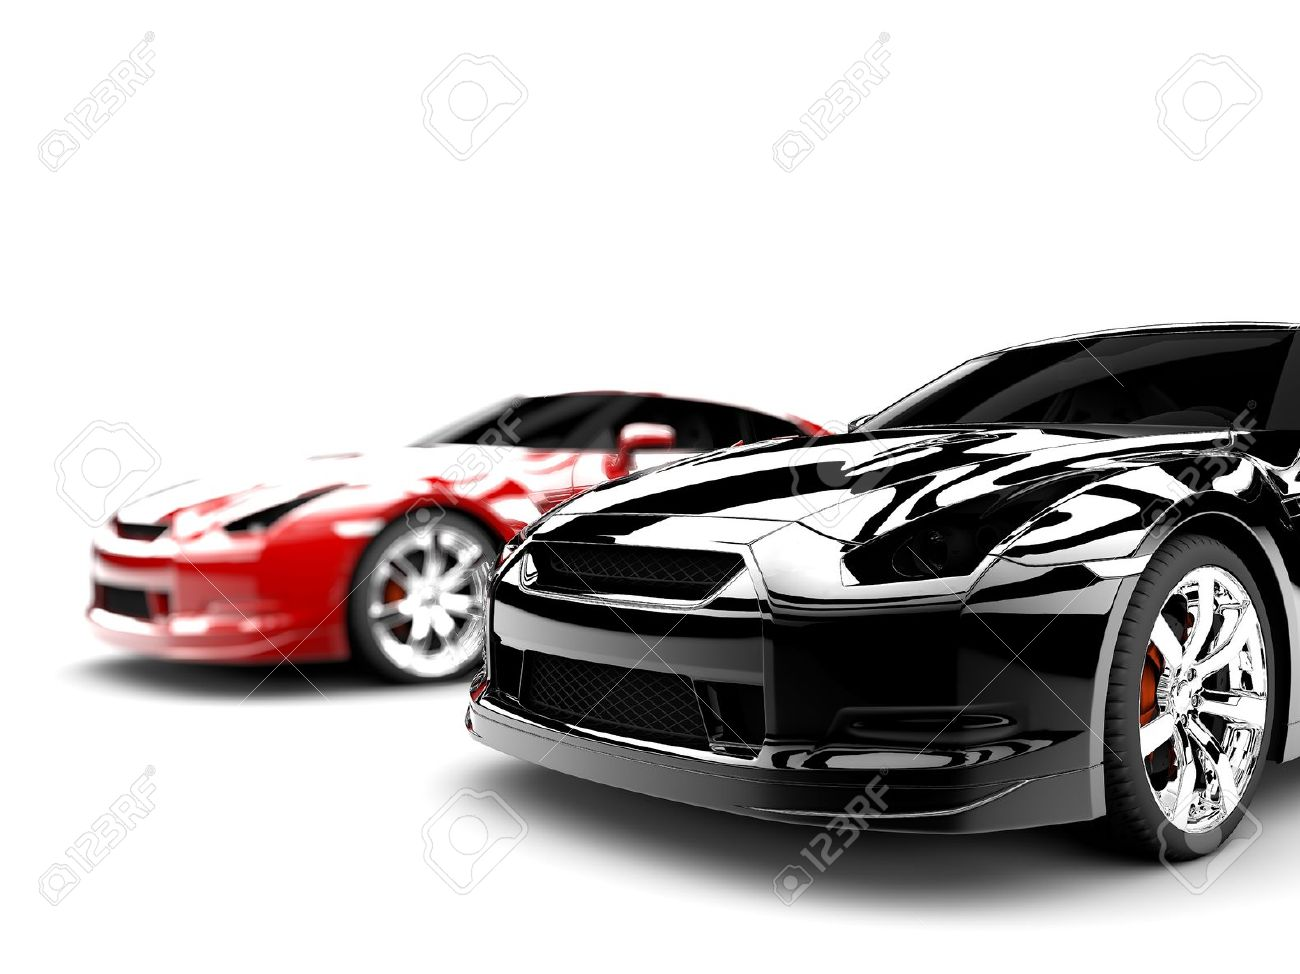 two generic sport elegant cars one red and one black stock photo